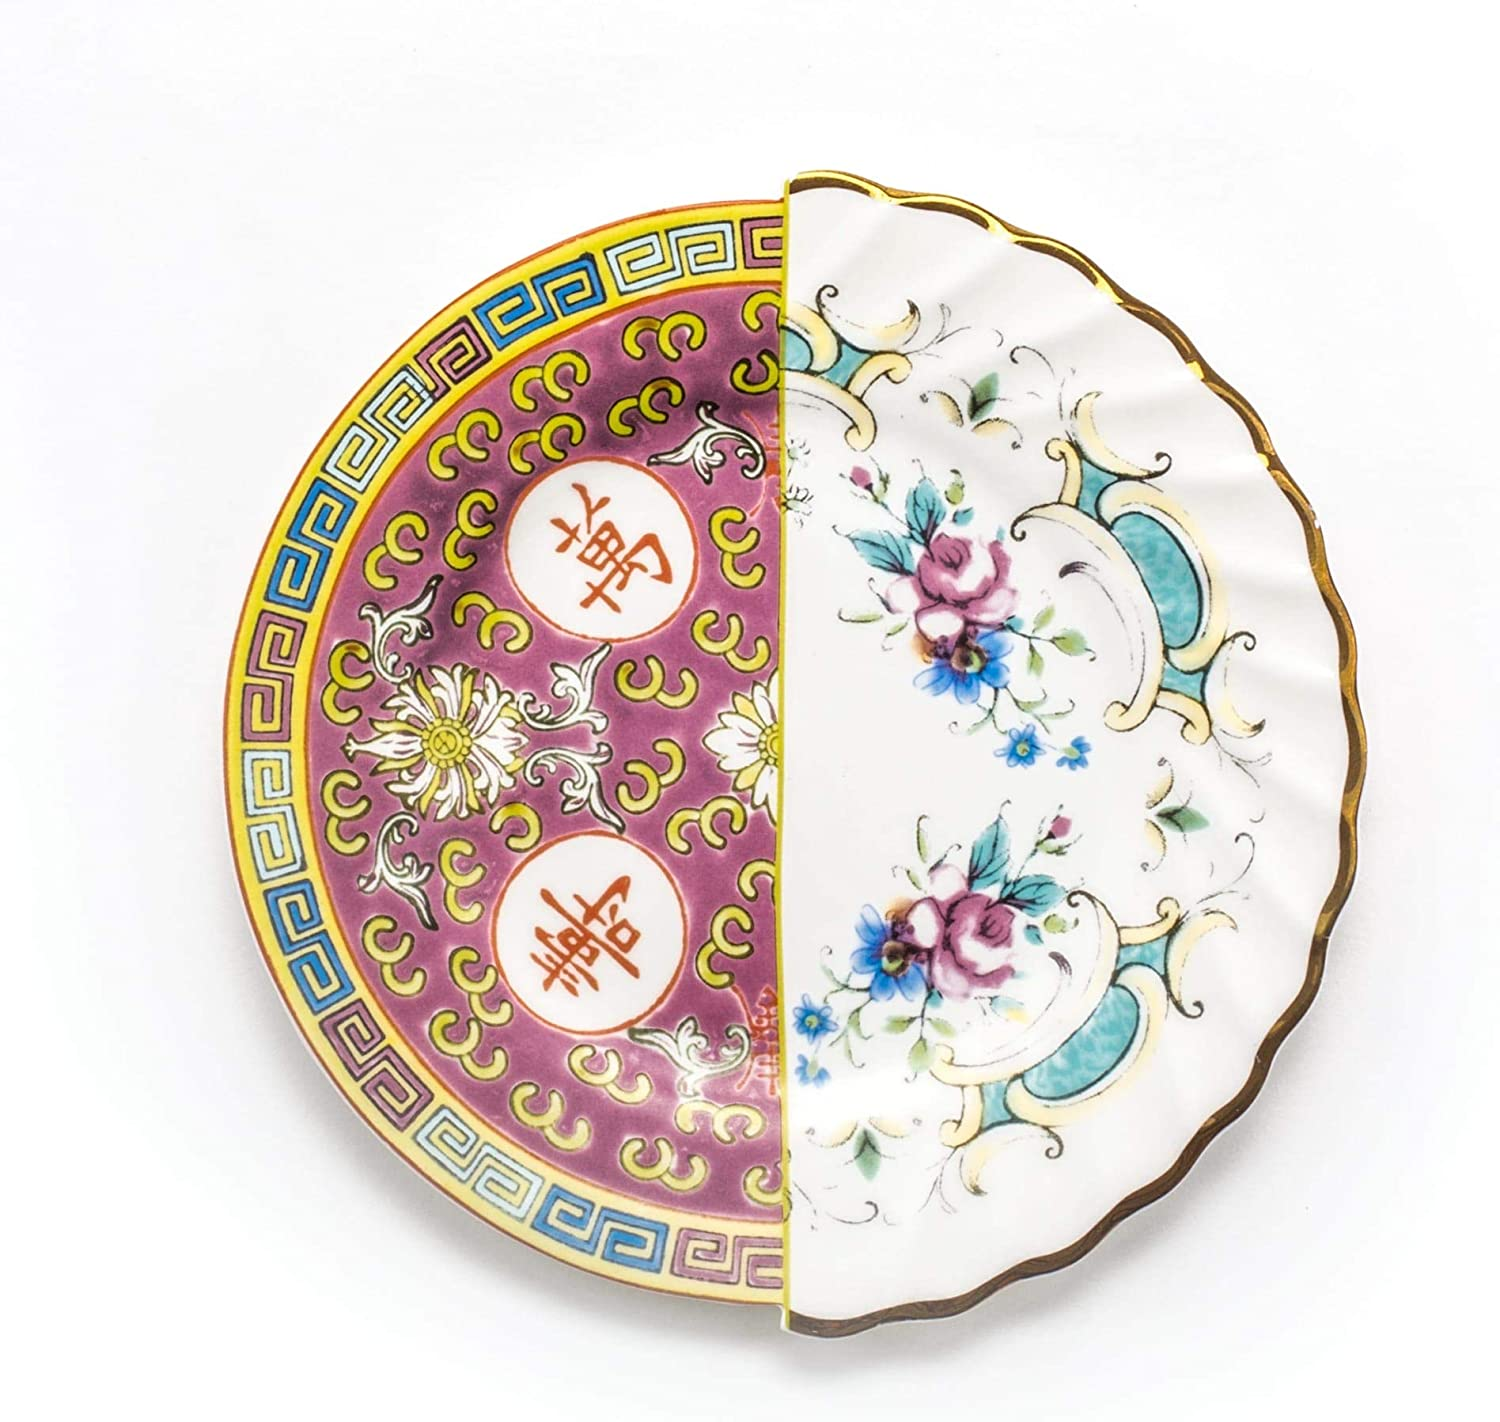 Seletti Hybrid - Classic Sales of SALE items from new works Dessert Eudossia plate Multicolor